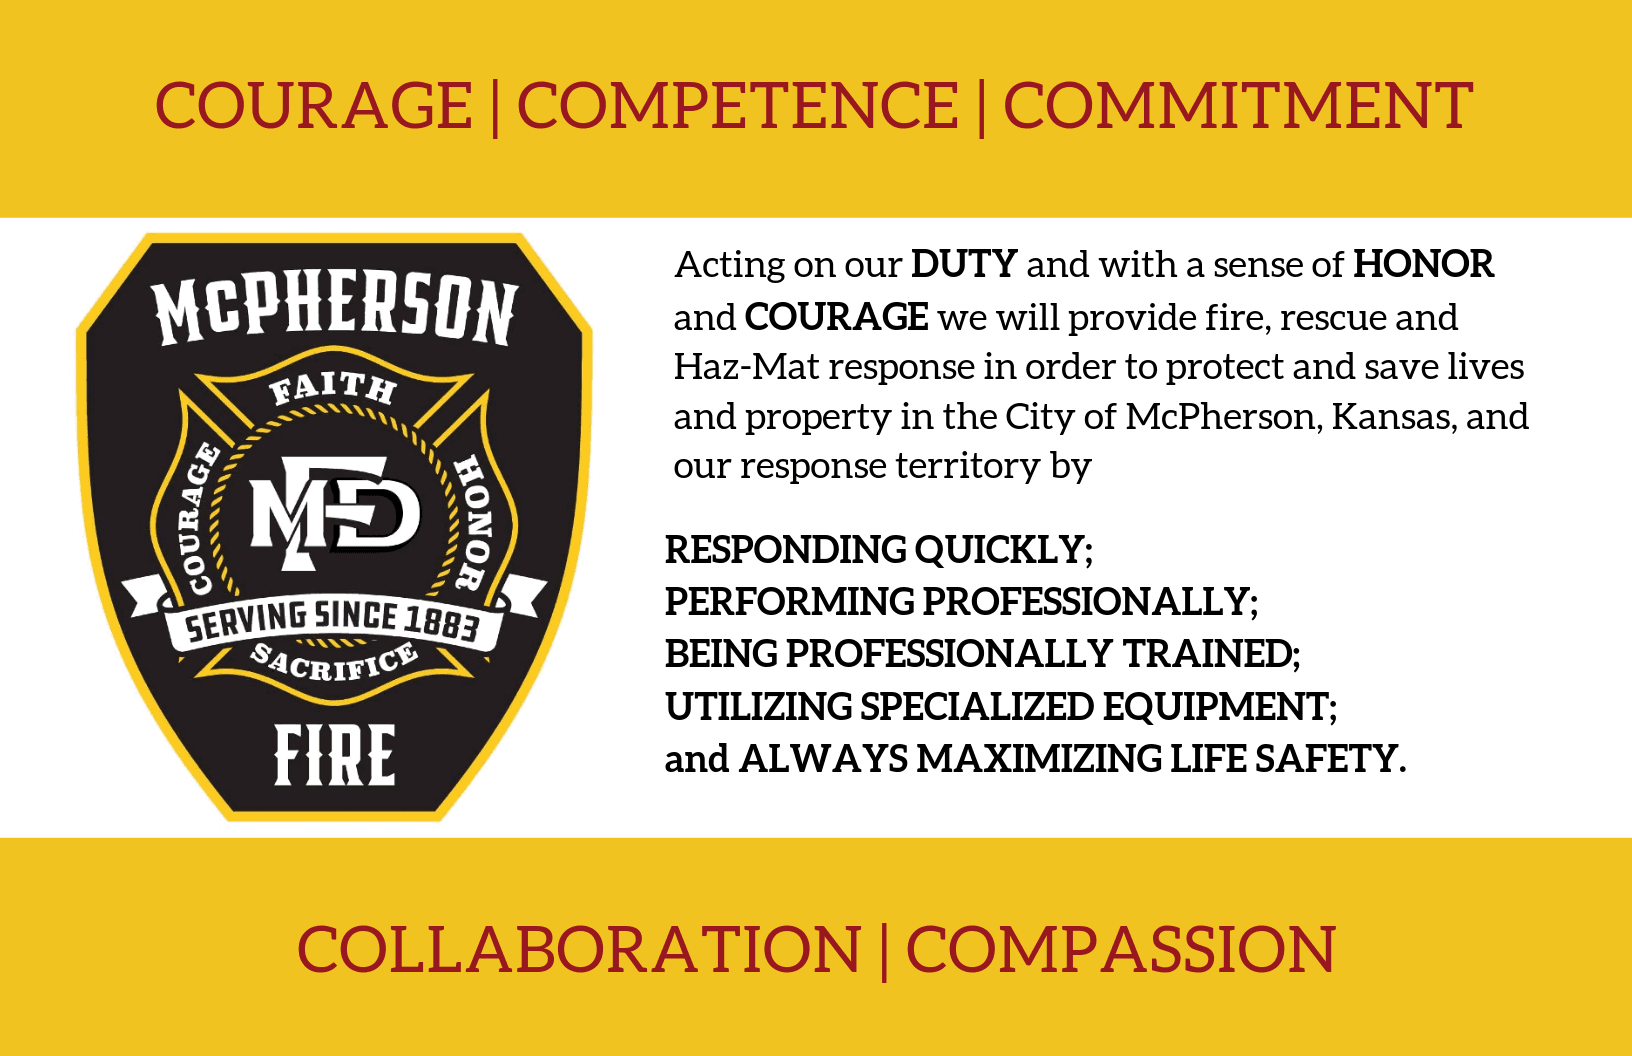 Poster design with badge image and mission statement for McPherson Fire Department